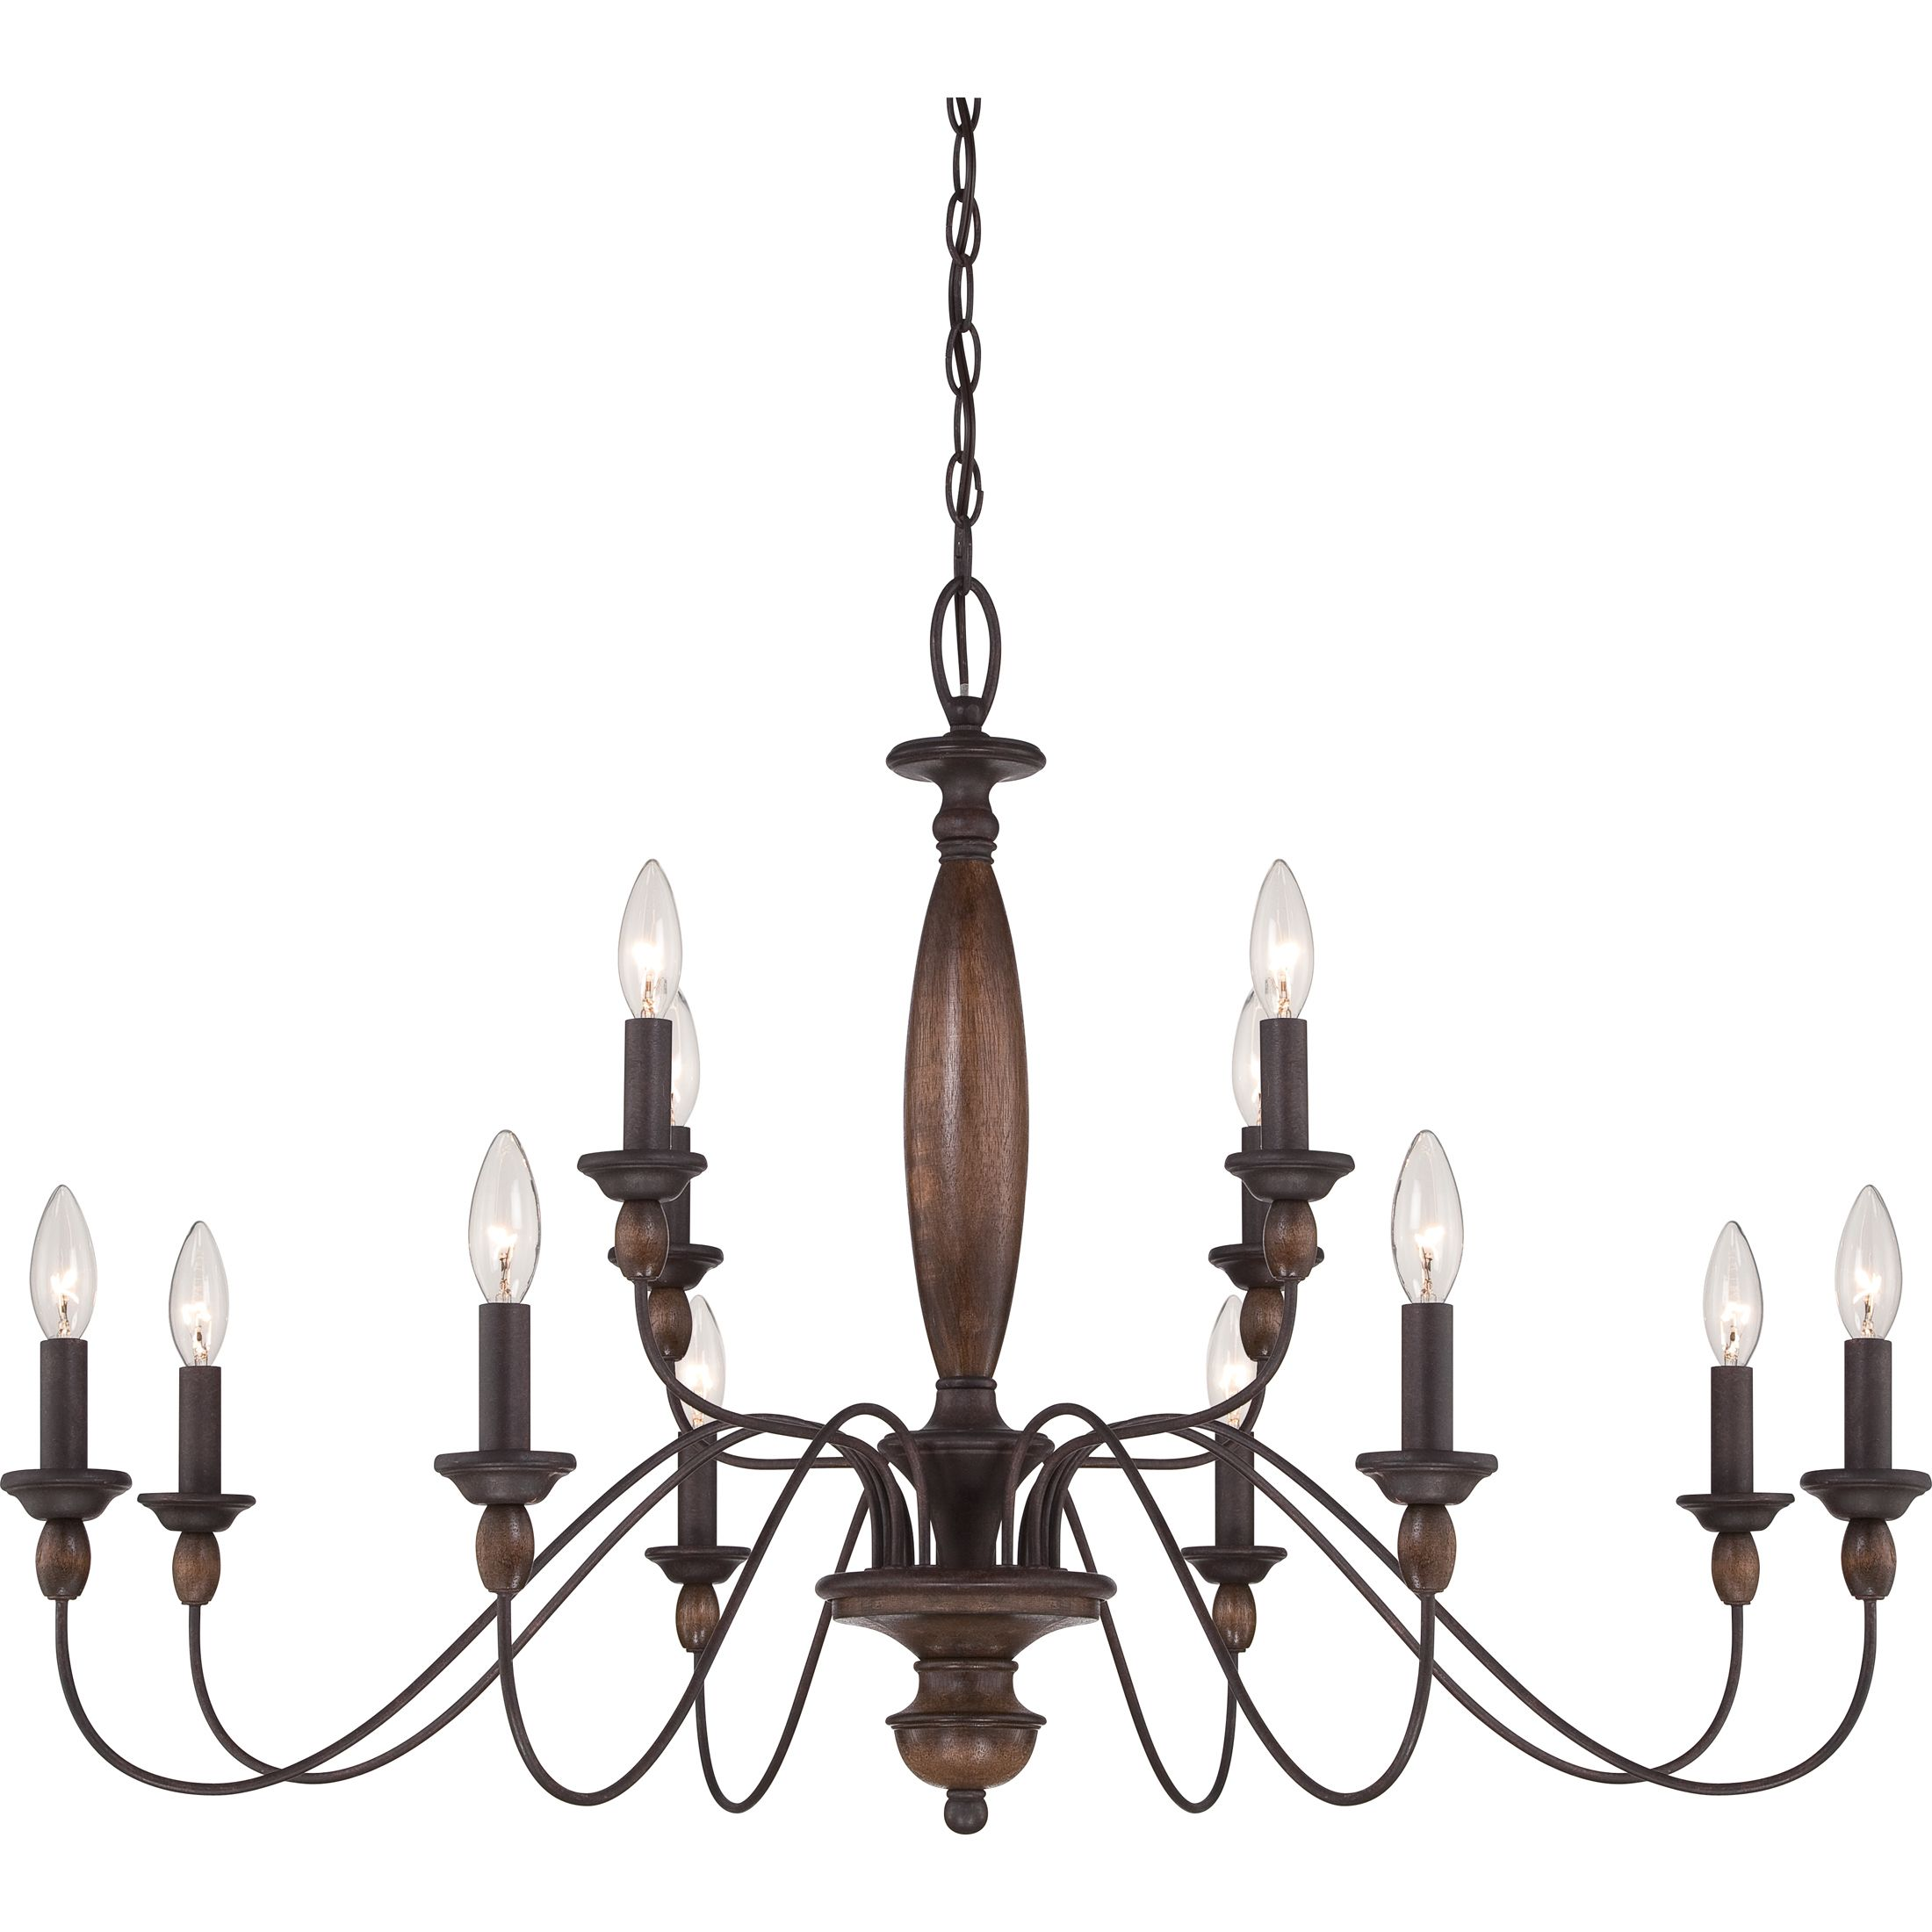 The Holbrook chandelier features traditional American style at its